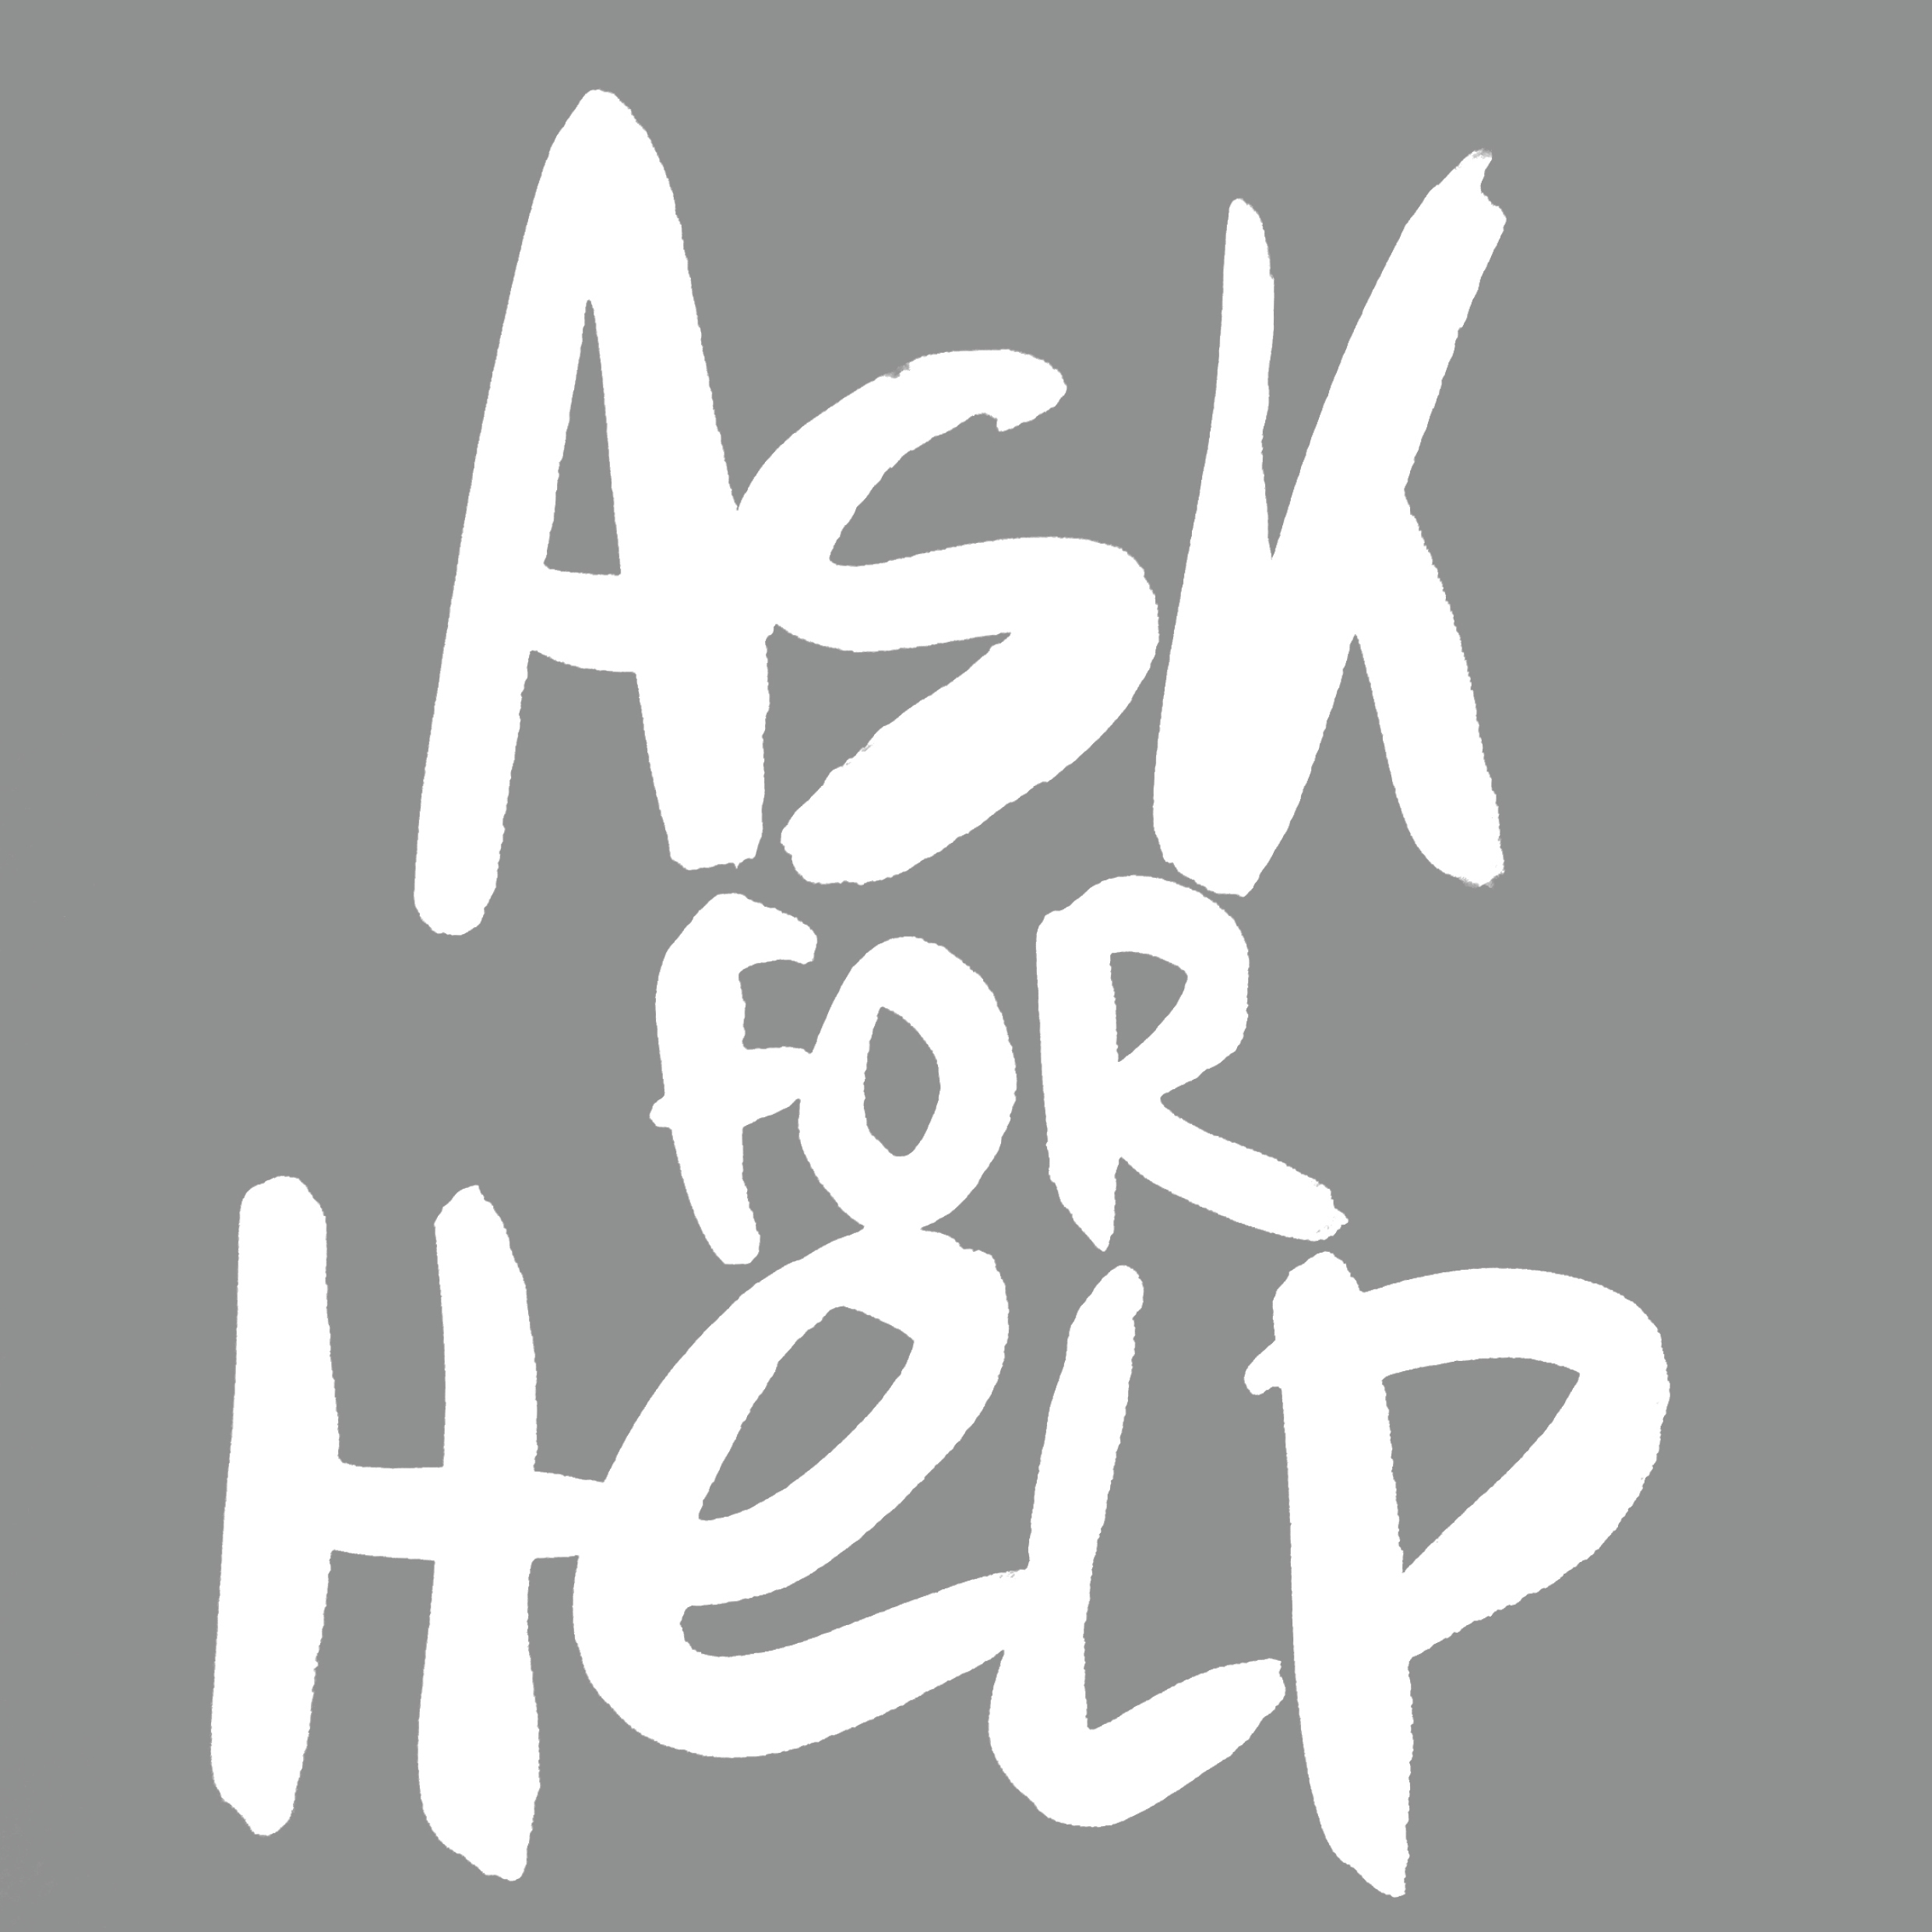 Downloads: print out the Ask for Help message -